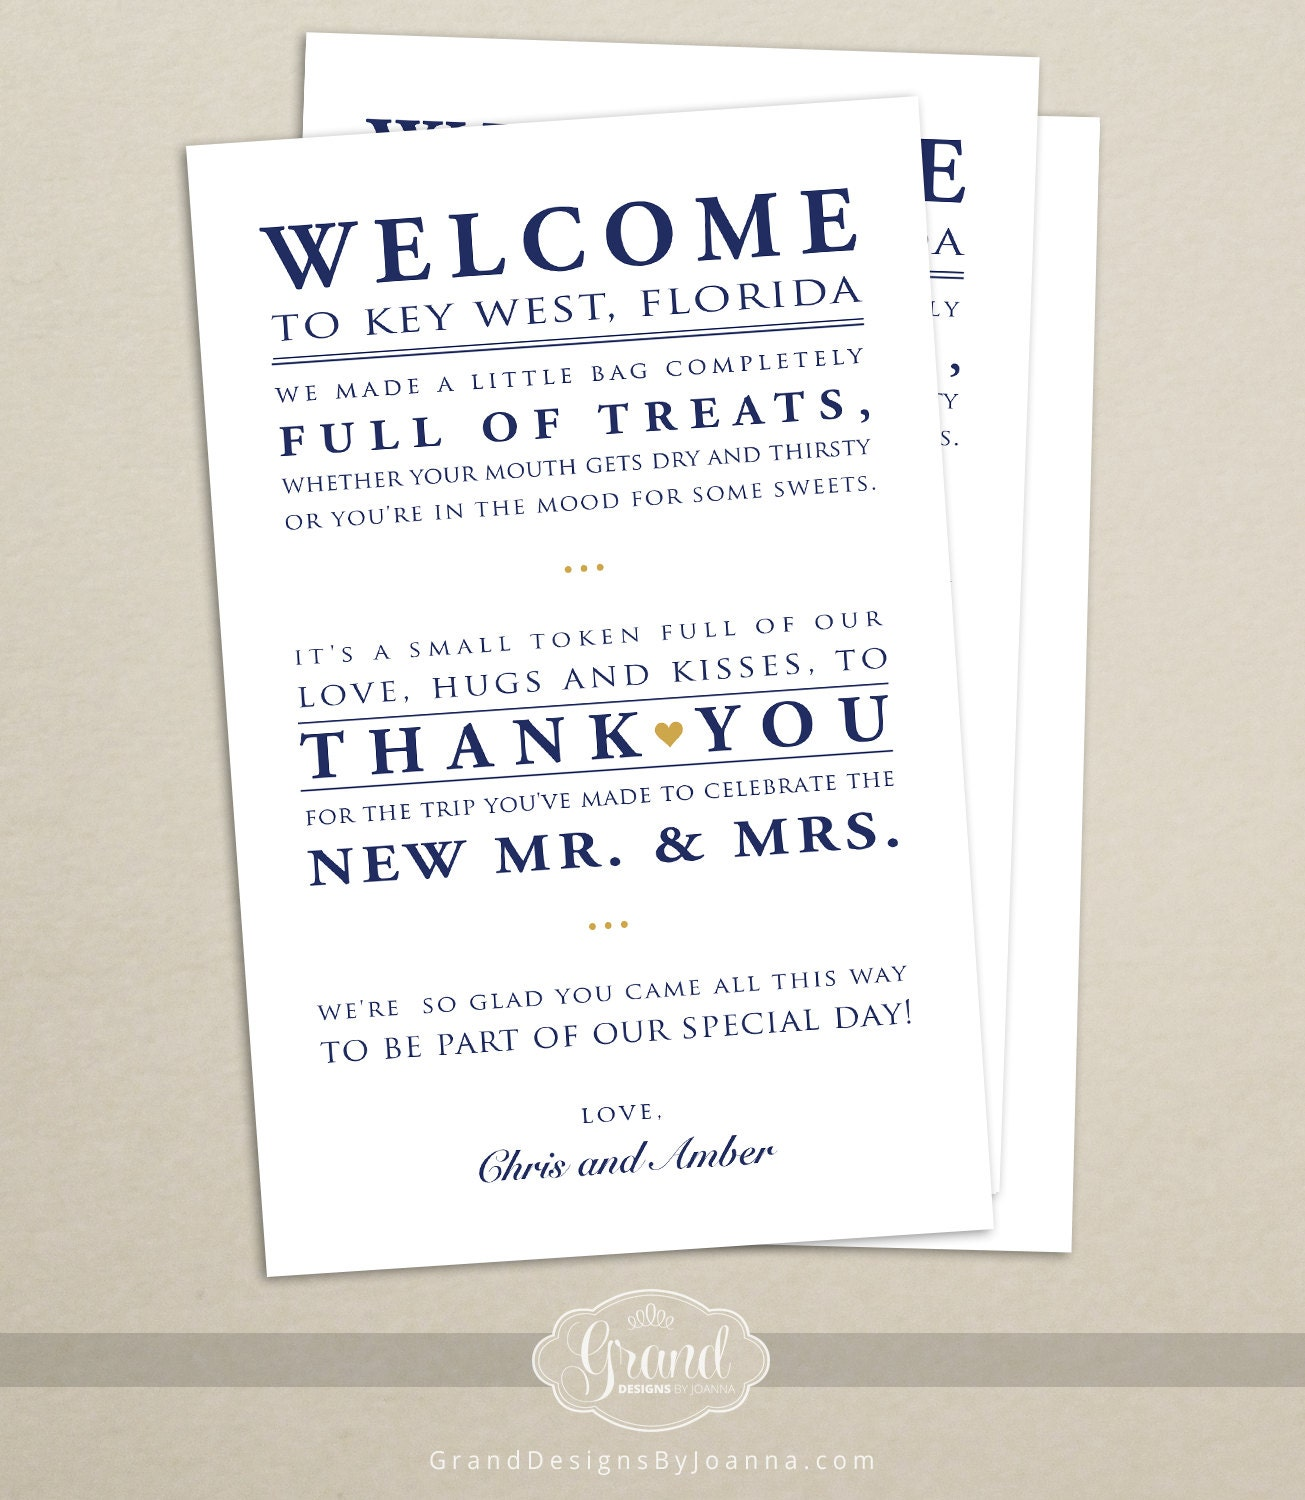 Wedding Hotel Welcome Bag Letter Wedding Welcome Bag Note